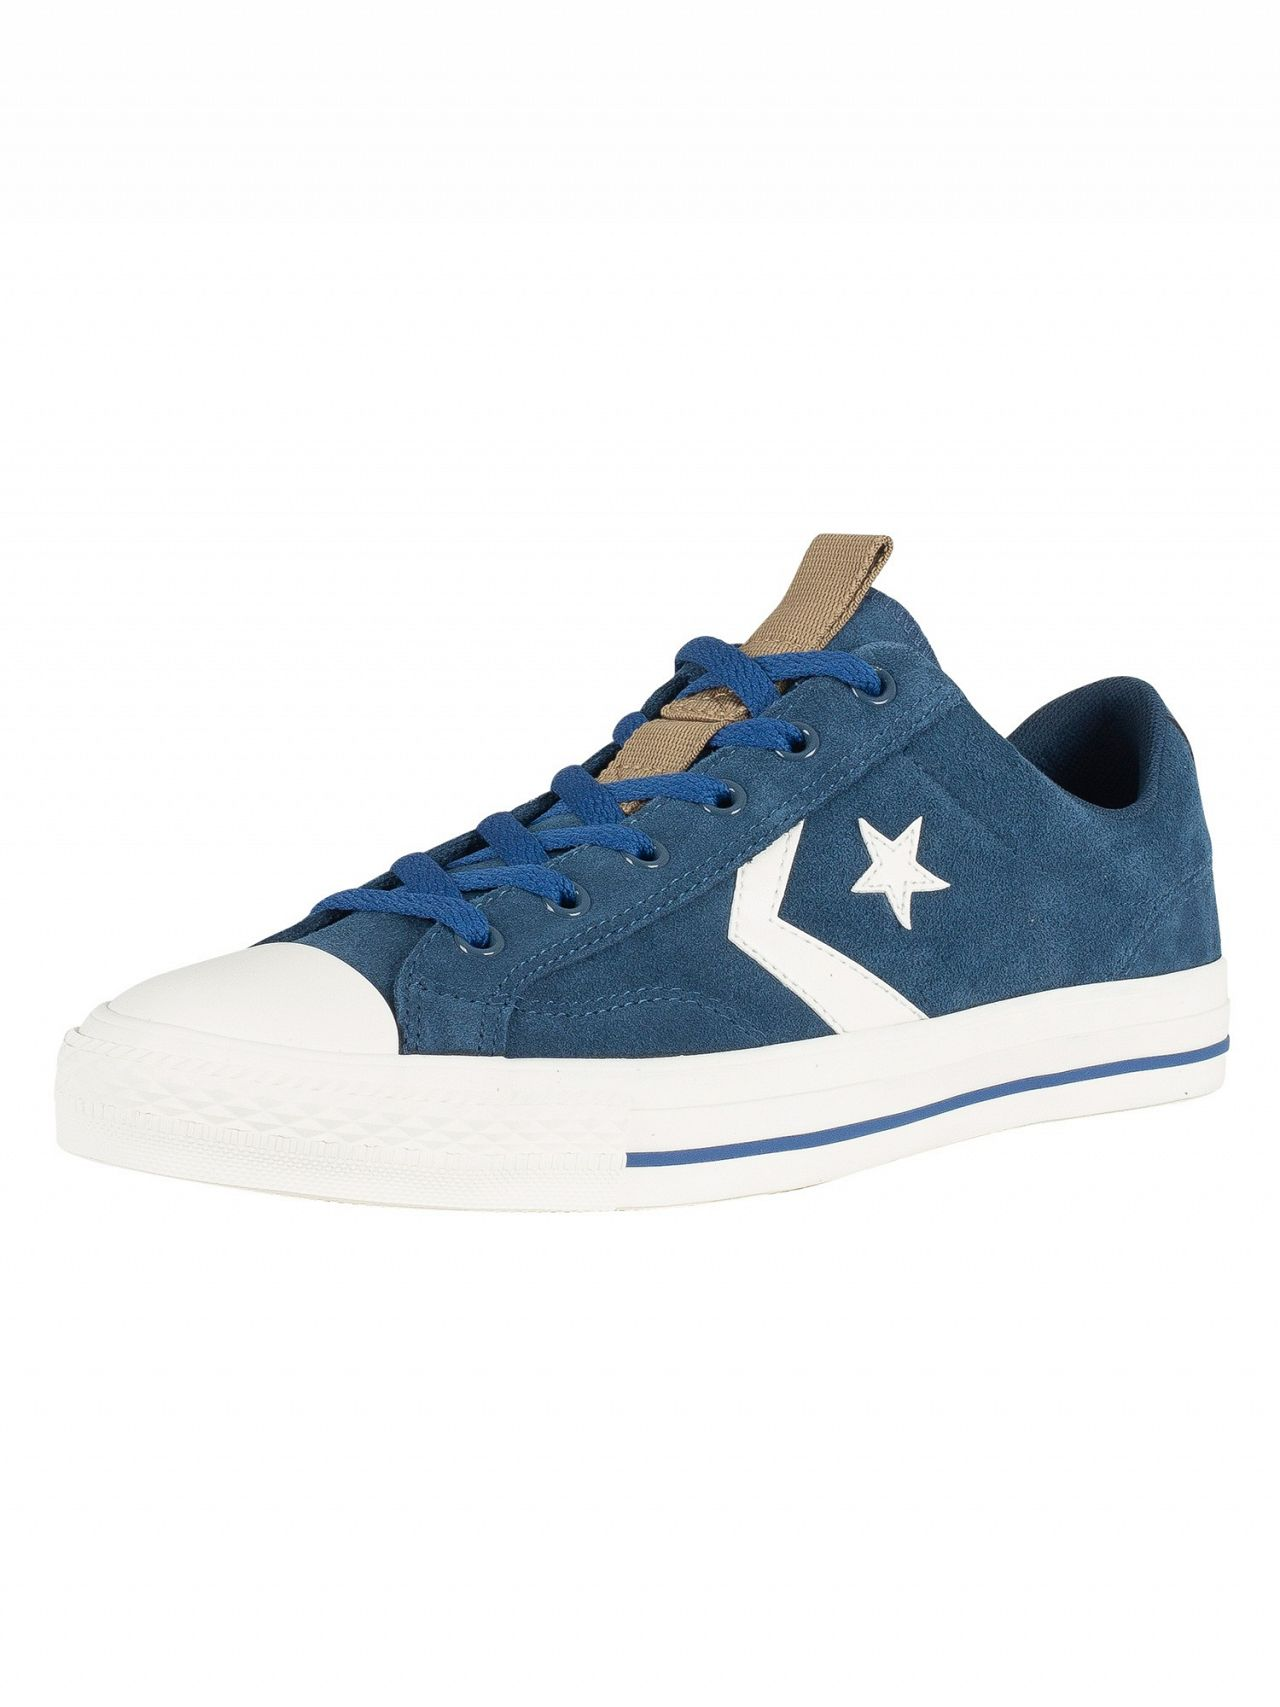 b514f30a2f24e3 Converse Navy Star Player OX Suede Trainers